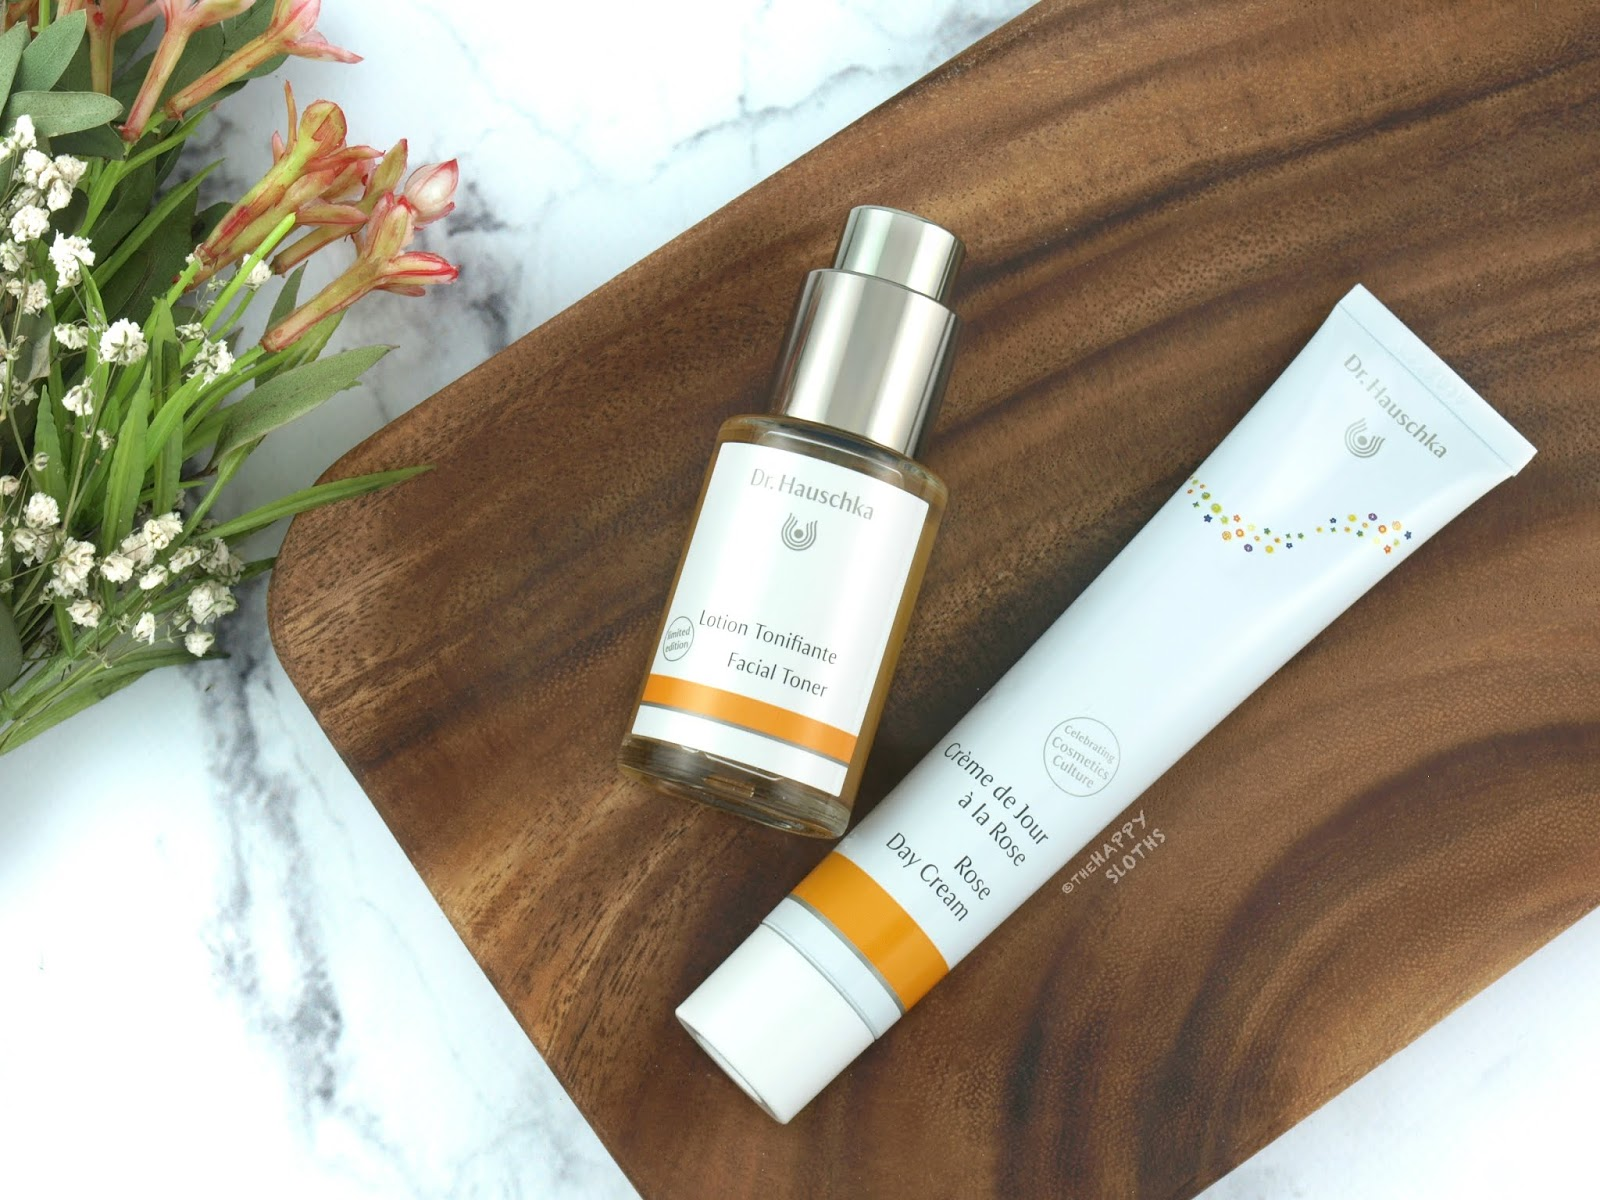 Dr. Hauschka | Facial Toner & Rose Day Cream: Review